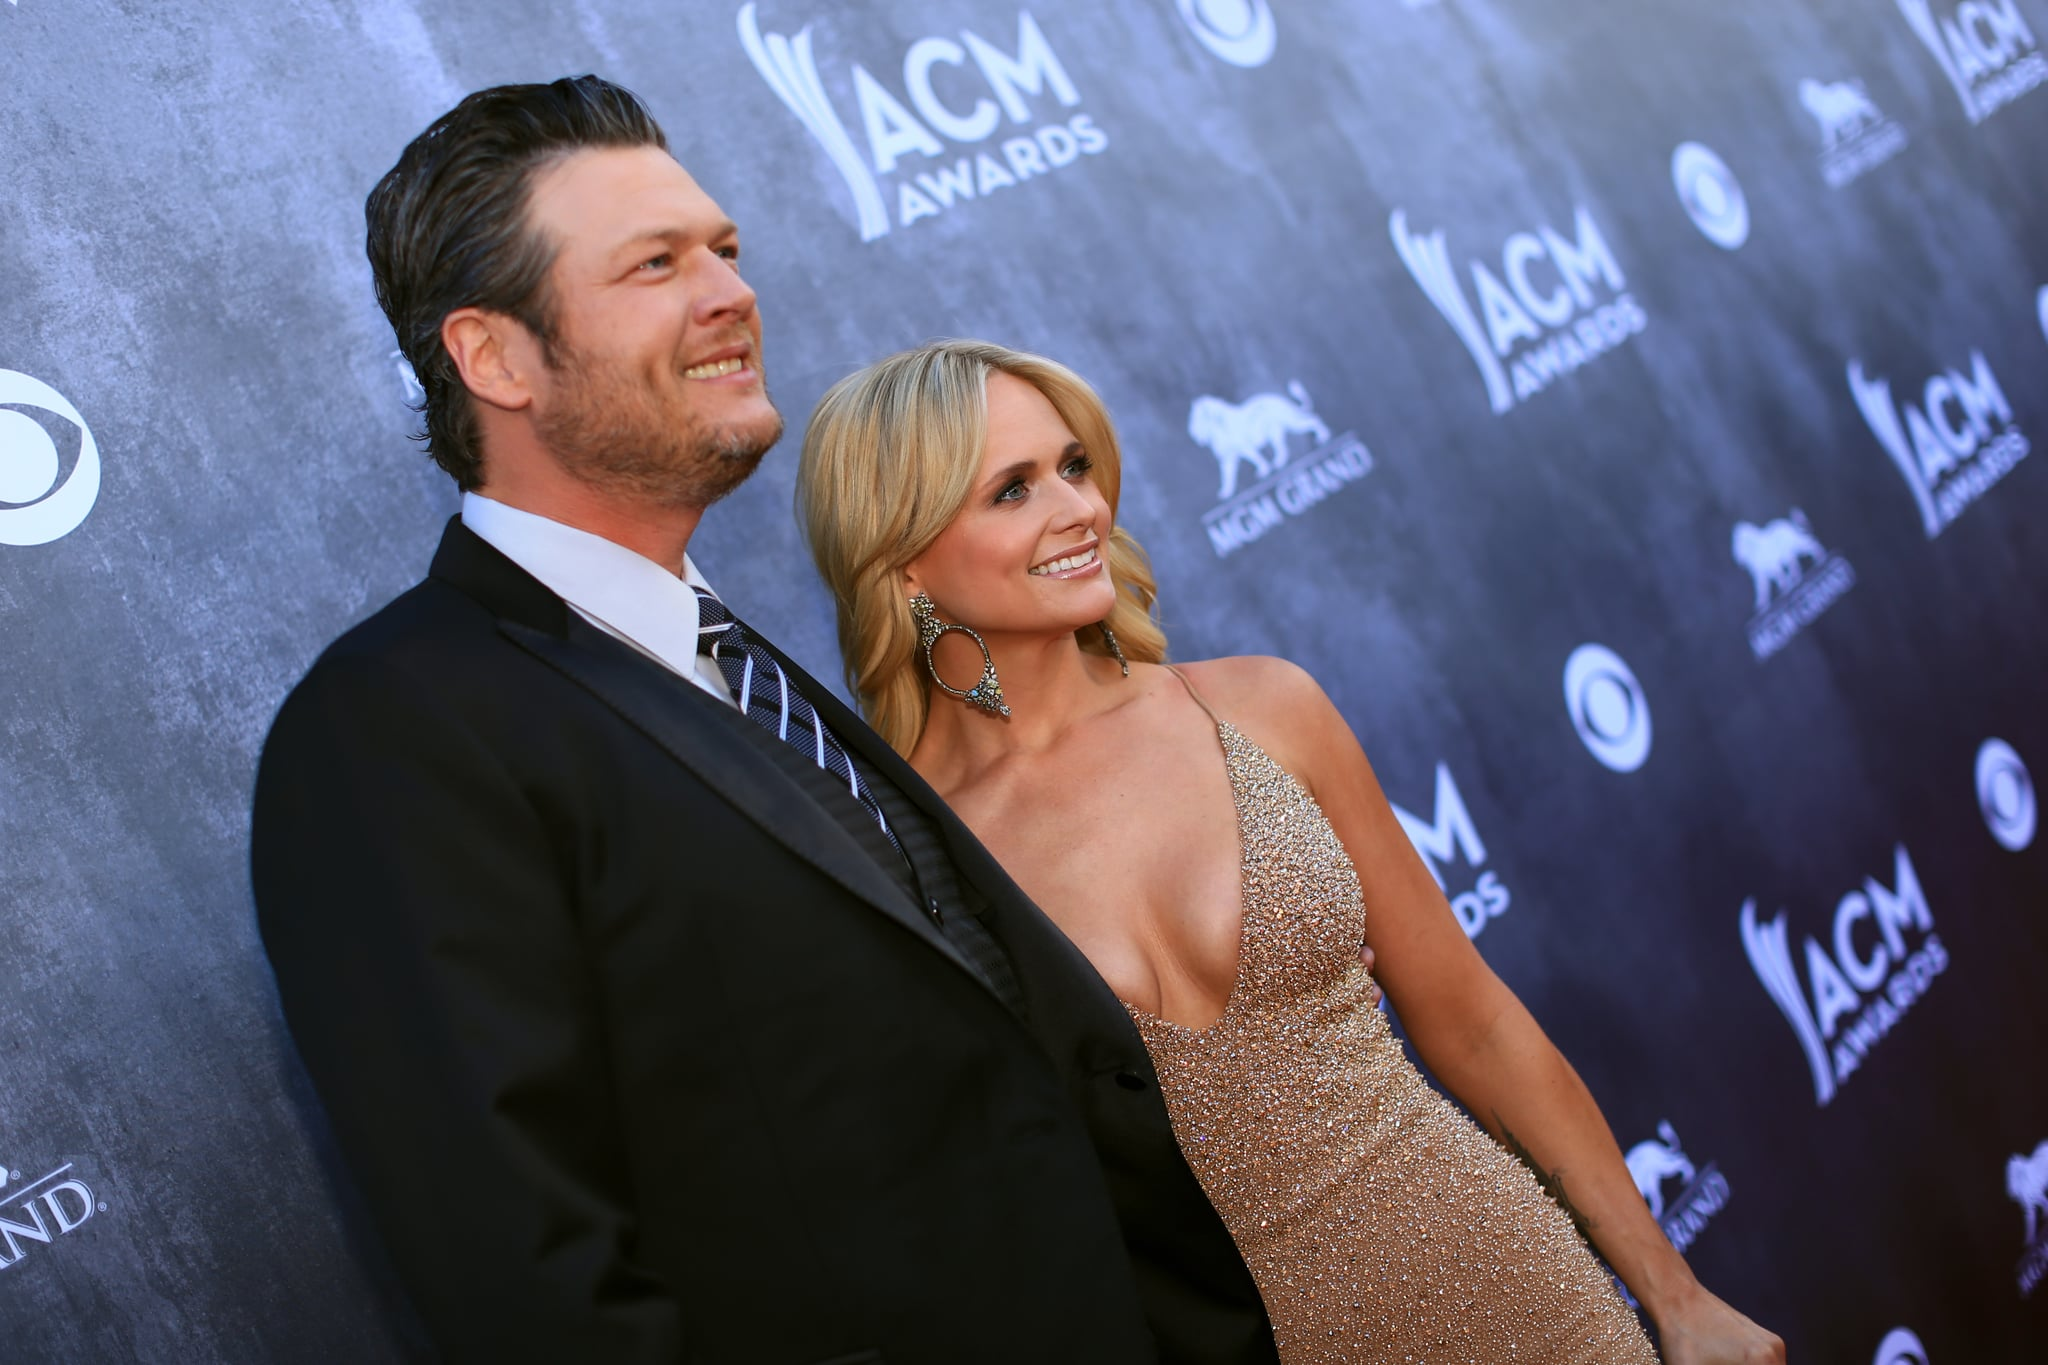 LAS VEGAS, NV - APRIL 06:  Recording artists Blake Shelton (L) and Miranda Lambert attend the 49th Annual Academy of Country Music Awards at the MGM Grand Garden Arena on April 6, 2014 in Las Vegas, Nevada.  (Photo by Christopher Polk/ACMA2014/Getty Images for ACM)